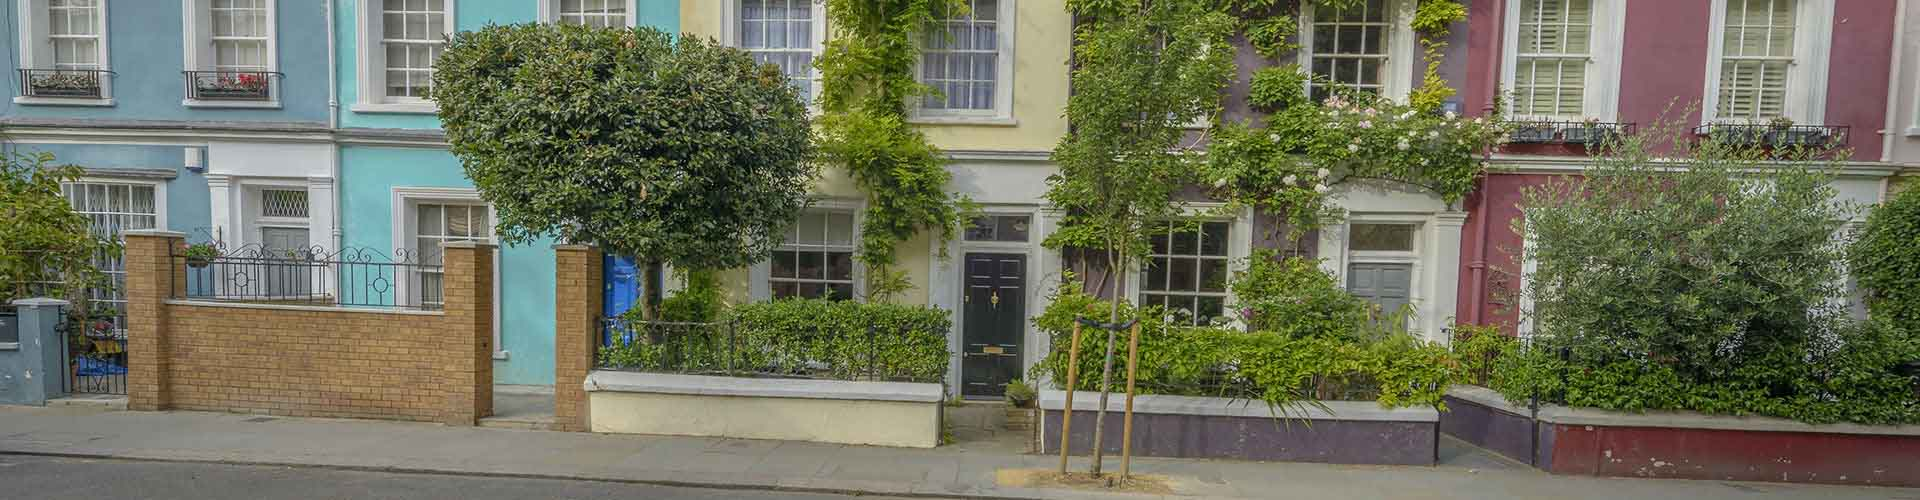 London – Hostels in the Notting Hill district. Maps for London, Photos and Reviews for each hostel in London.